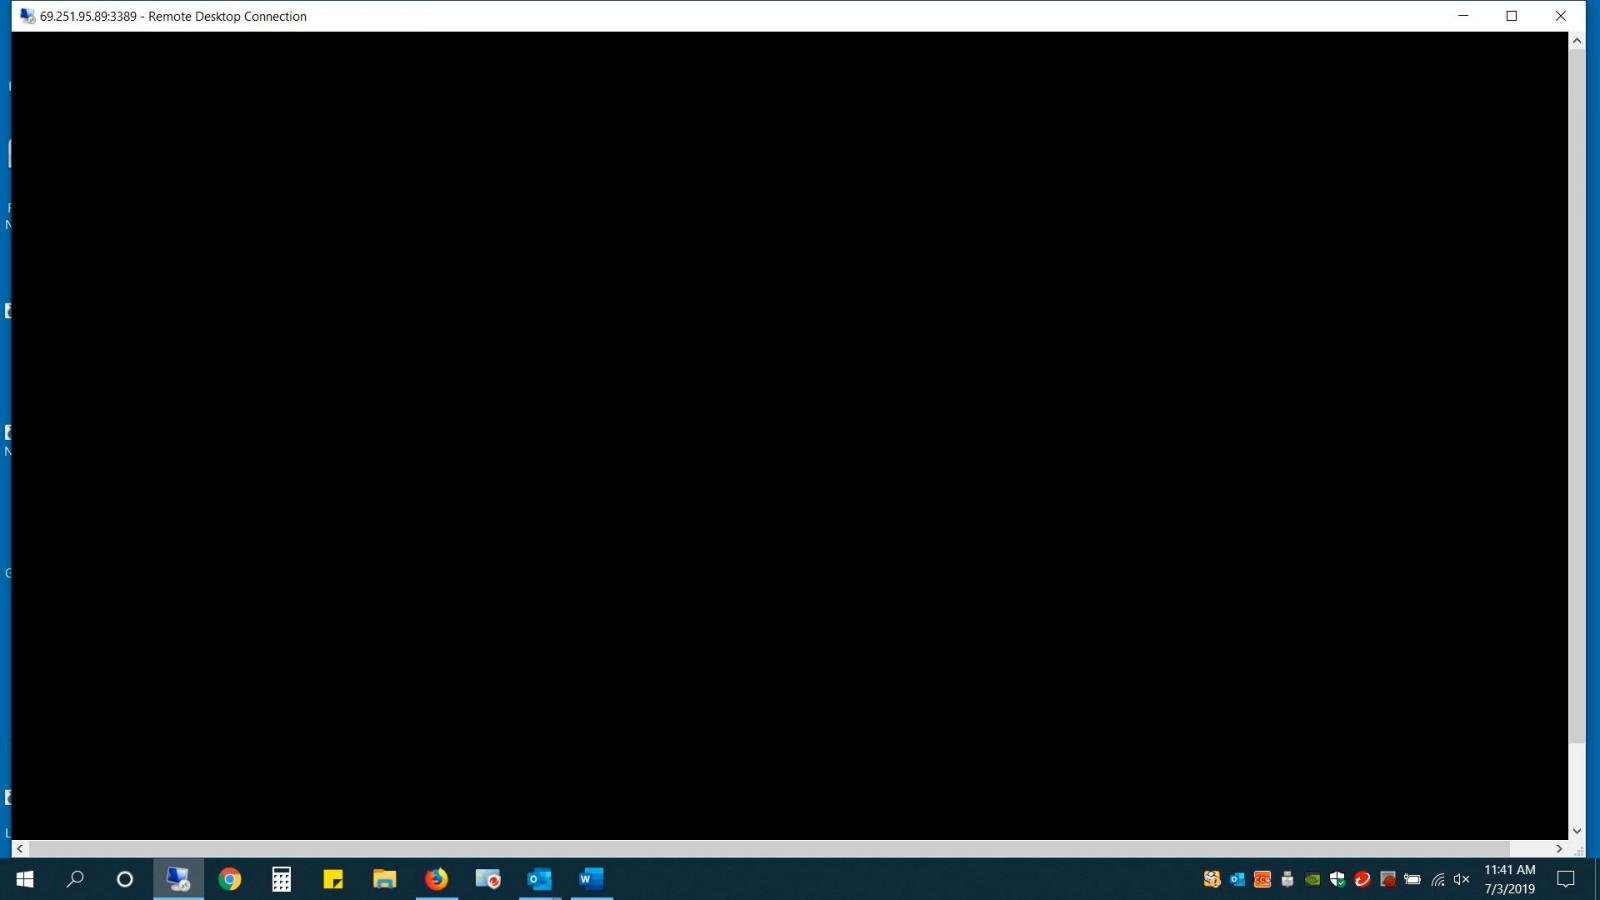 Windows 10 1903 Bug May Show Black Screen in Remote Desktop